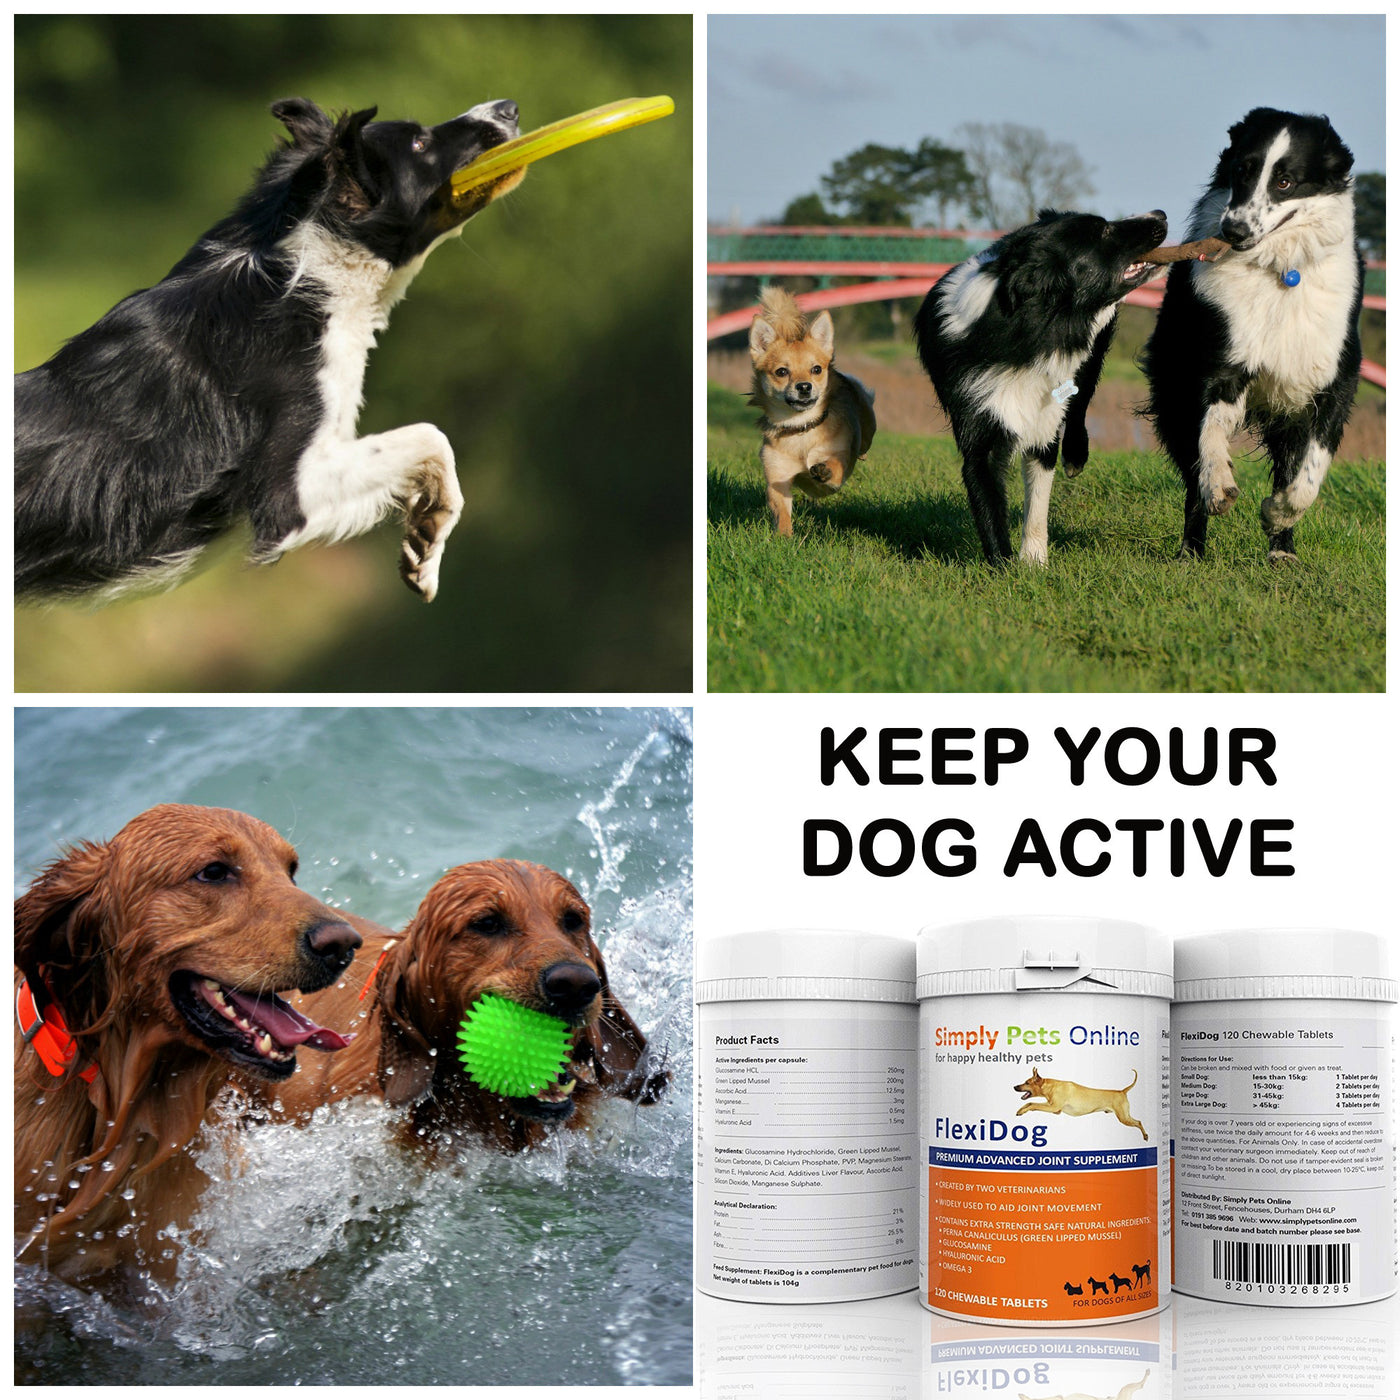 Flexidog (FlexiK9) Dog Joint Supplement Buy 4 SPECIAL OFFER | POST FREE